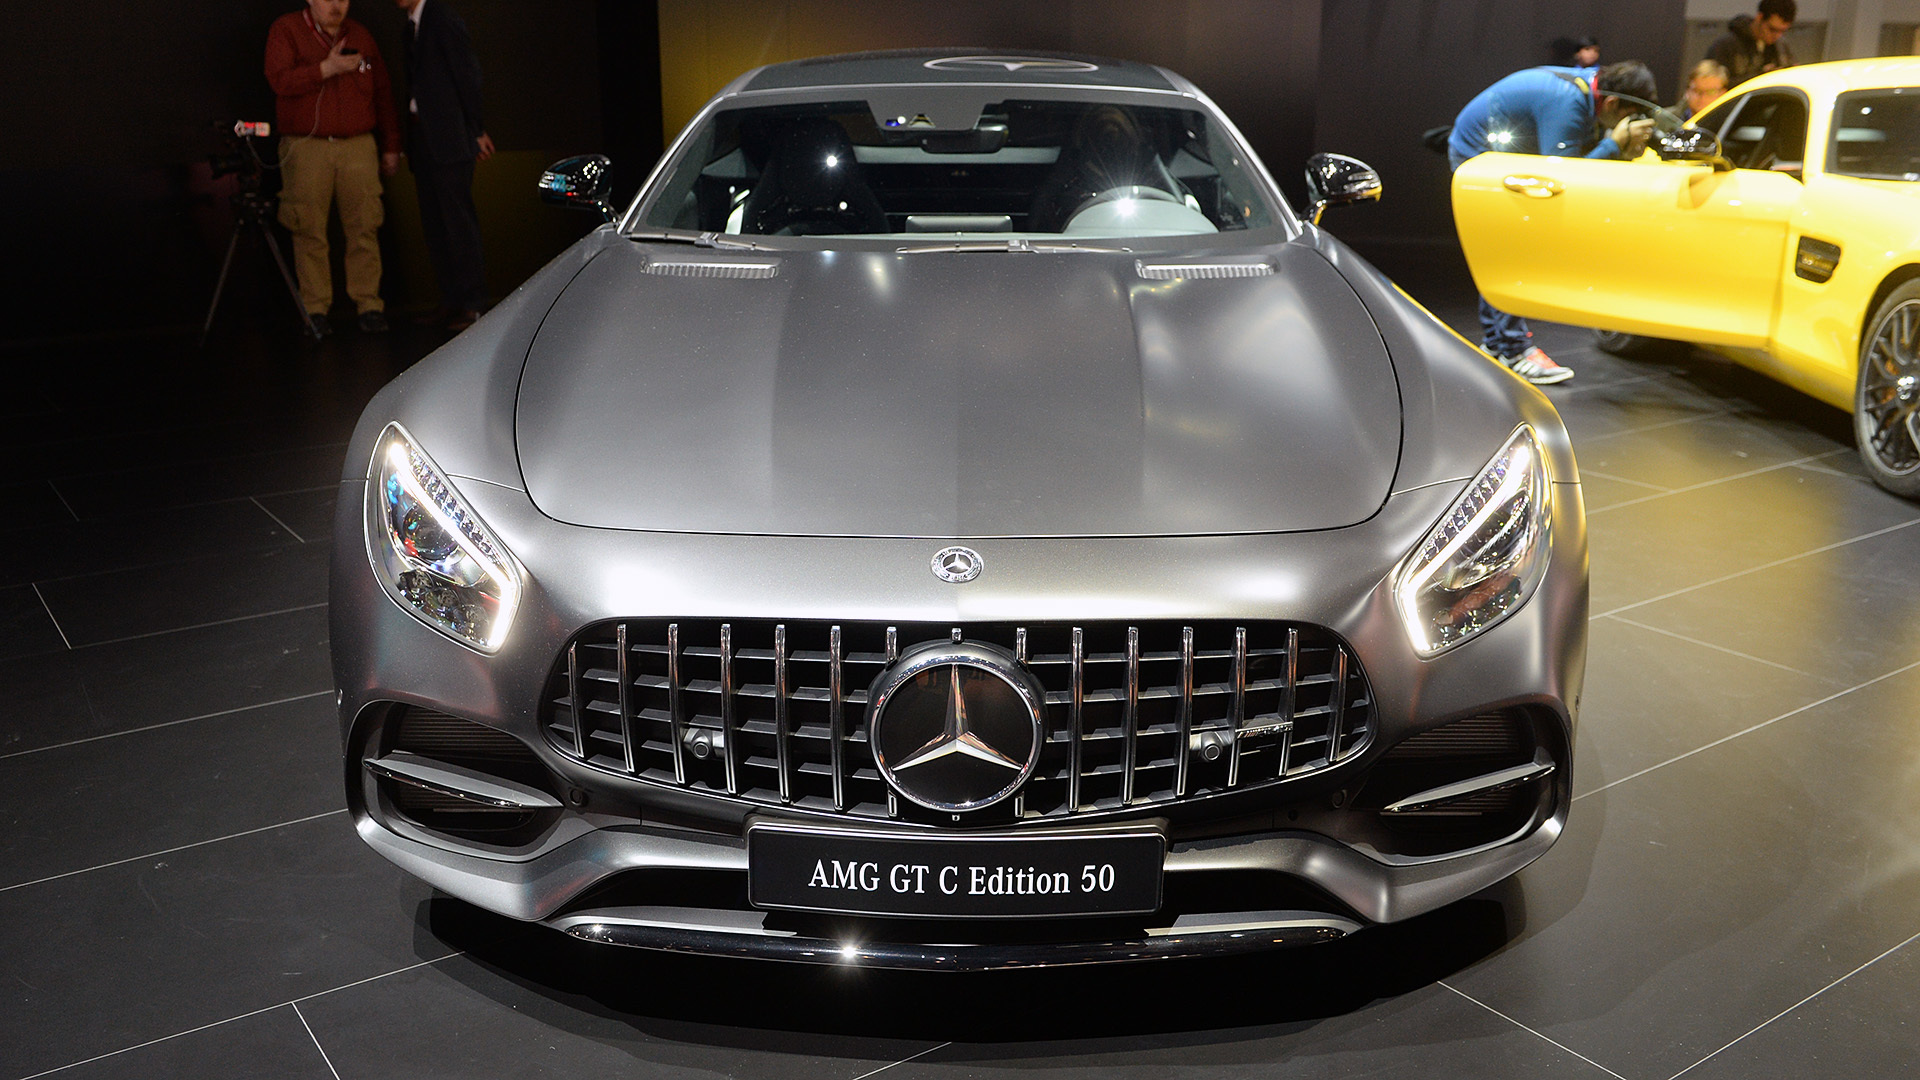 Mercedes-AMG GT C Coupe at Front